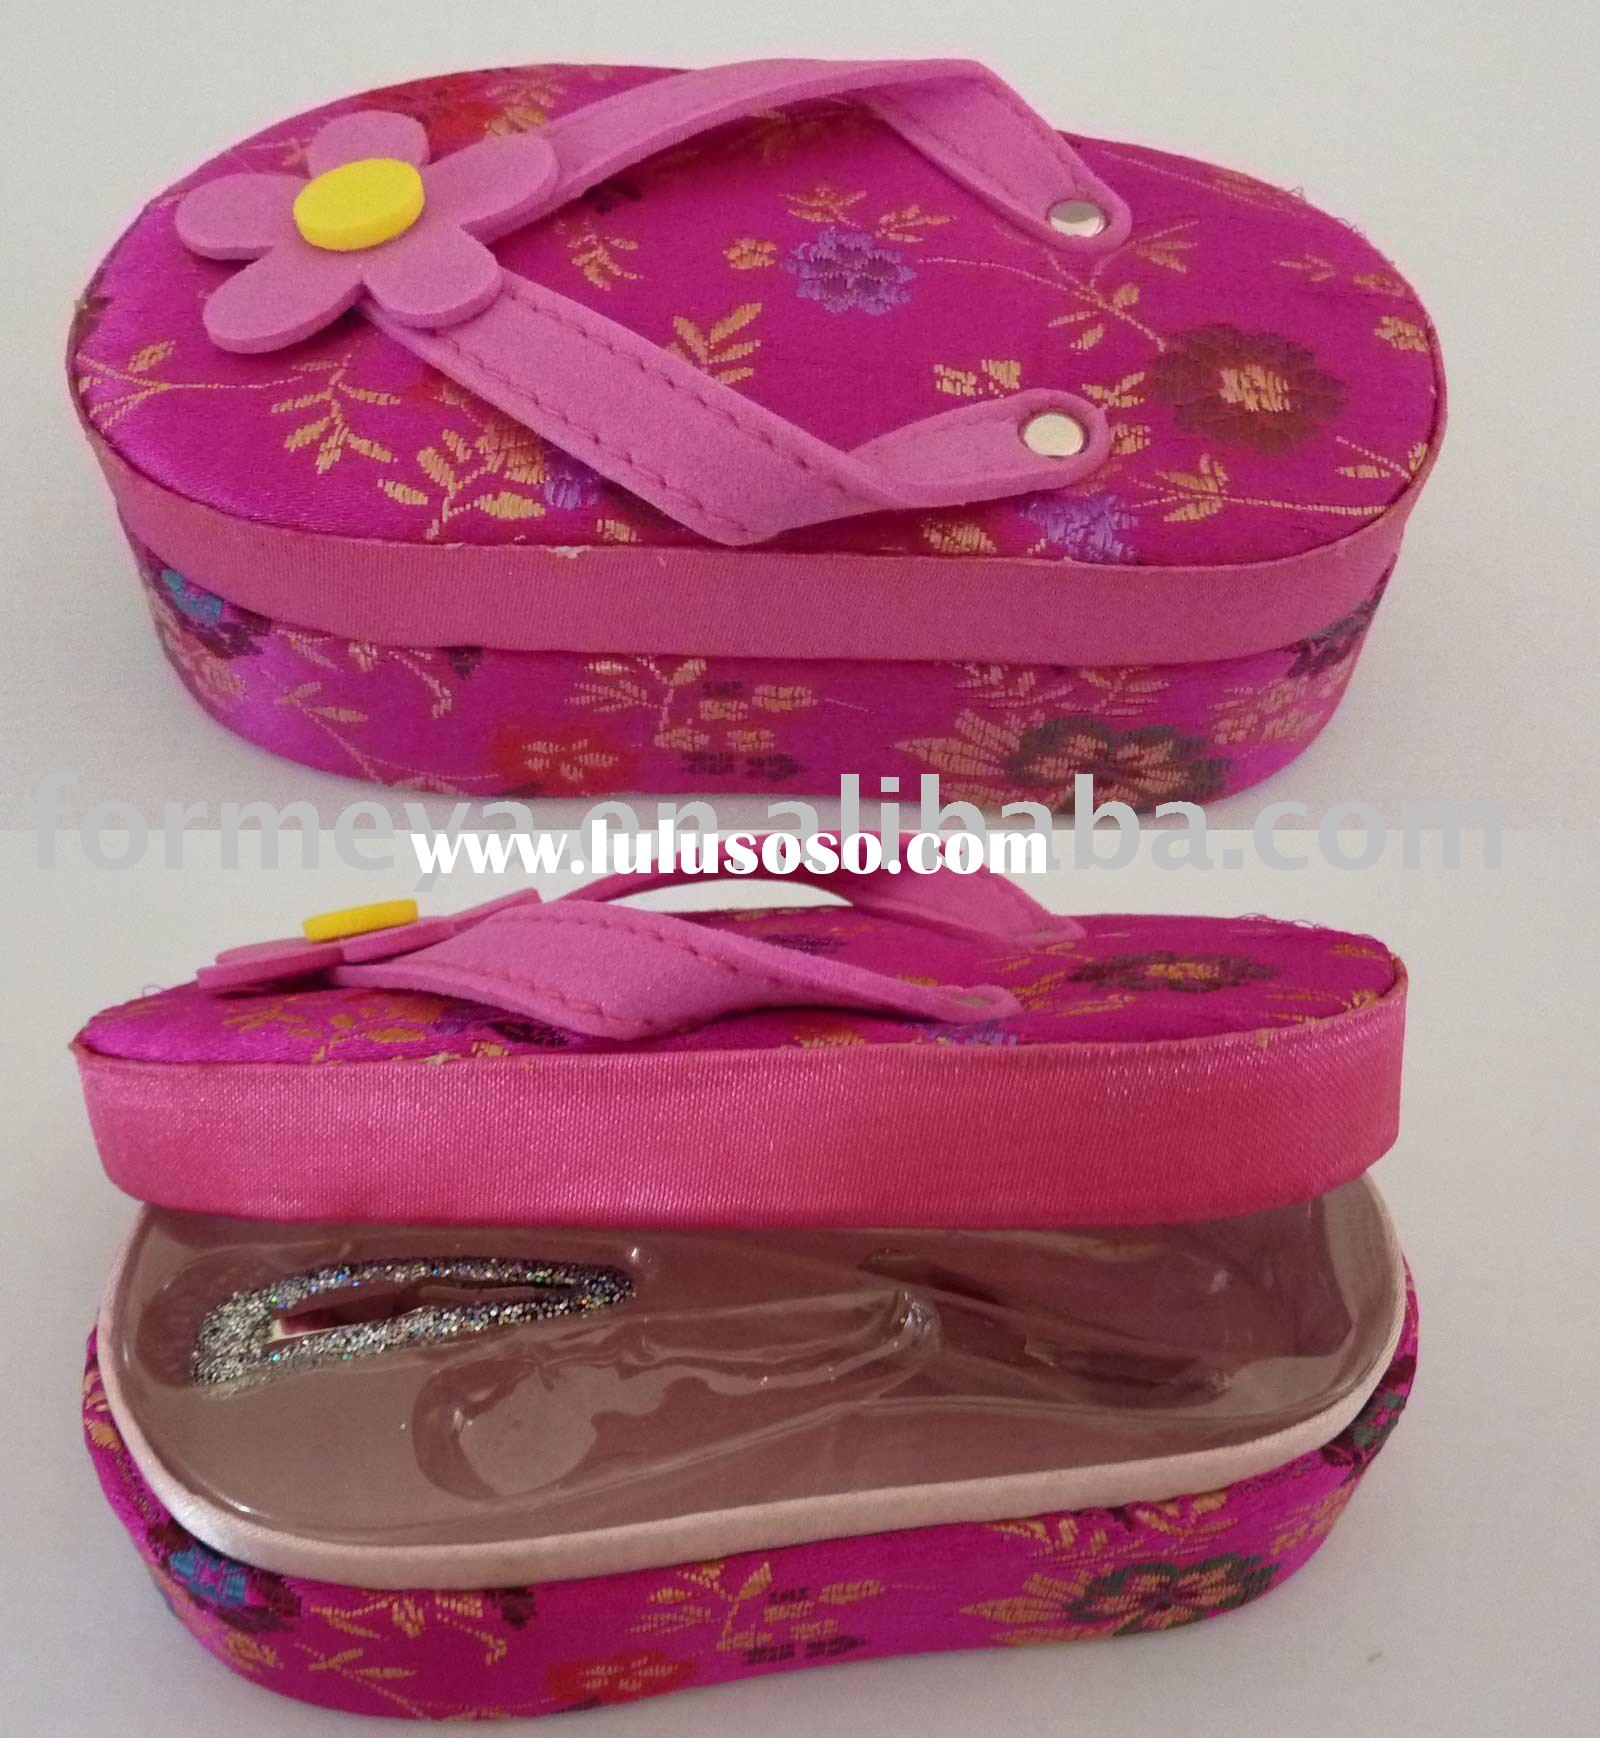 small decorative trinket box jewelry box for girl